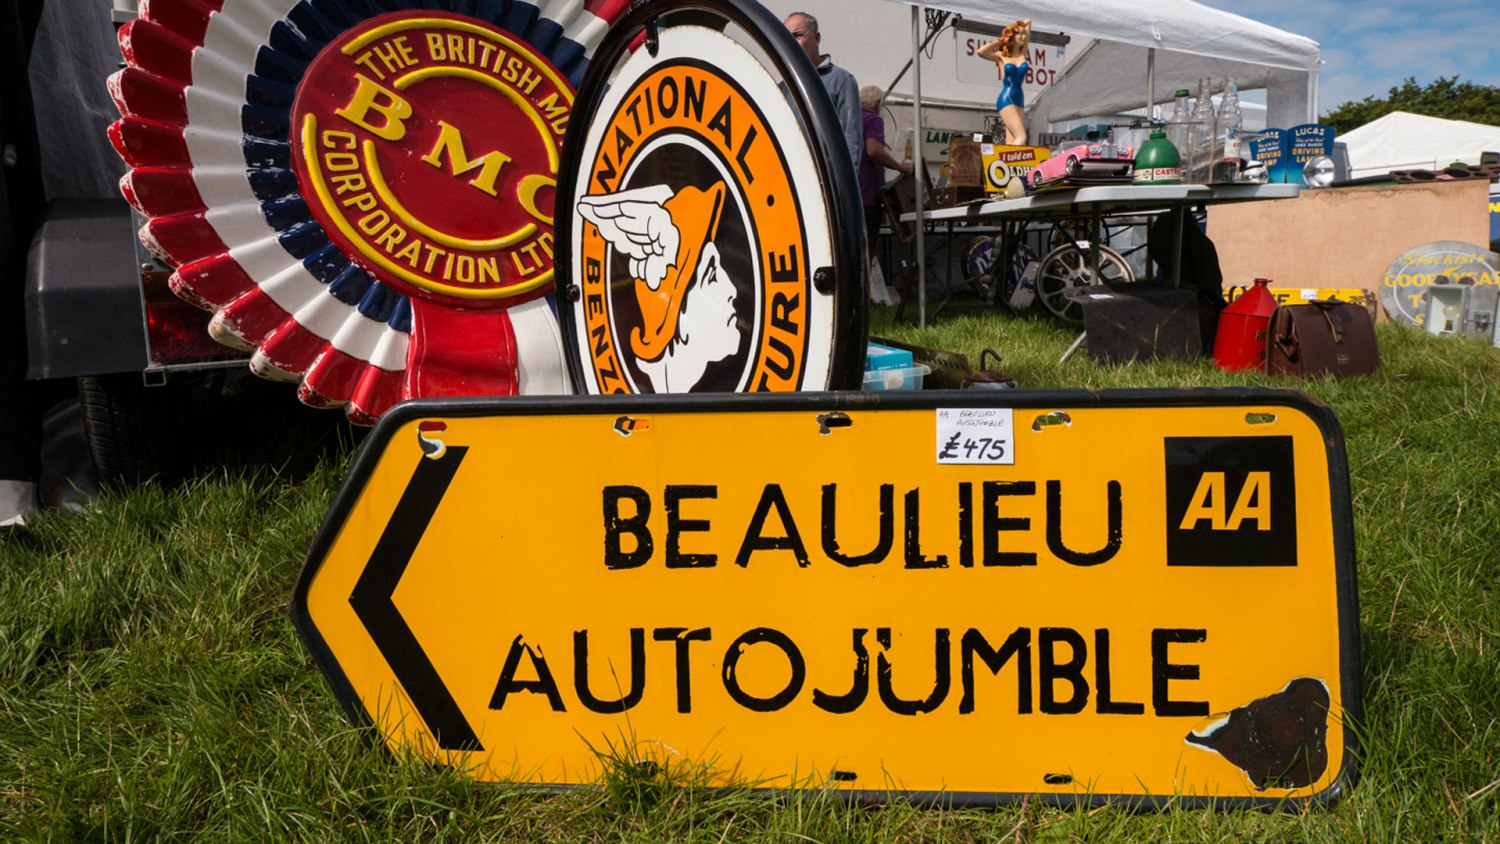 Beaulieu International Autojumble – 7-8 September